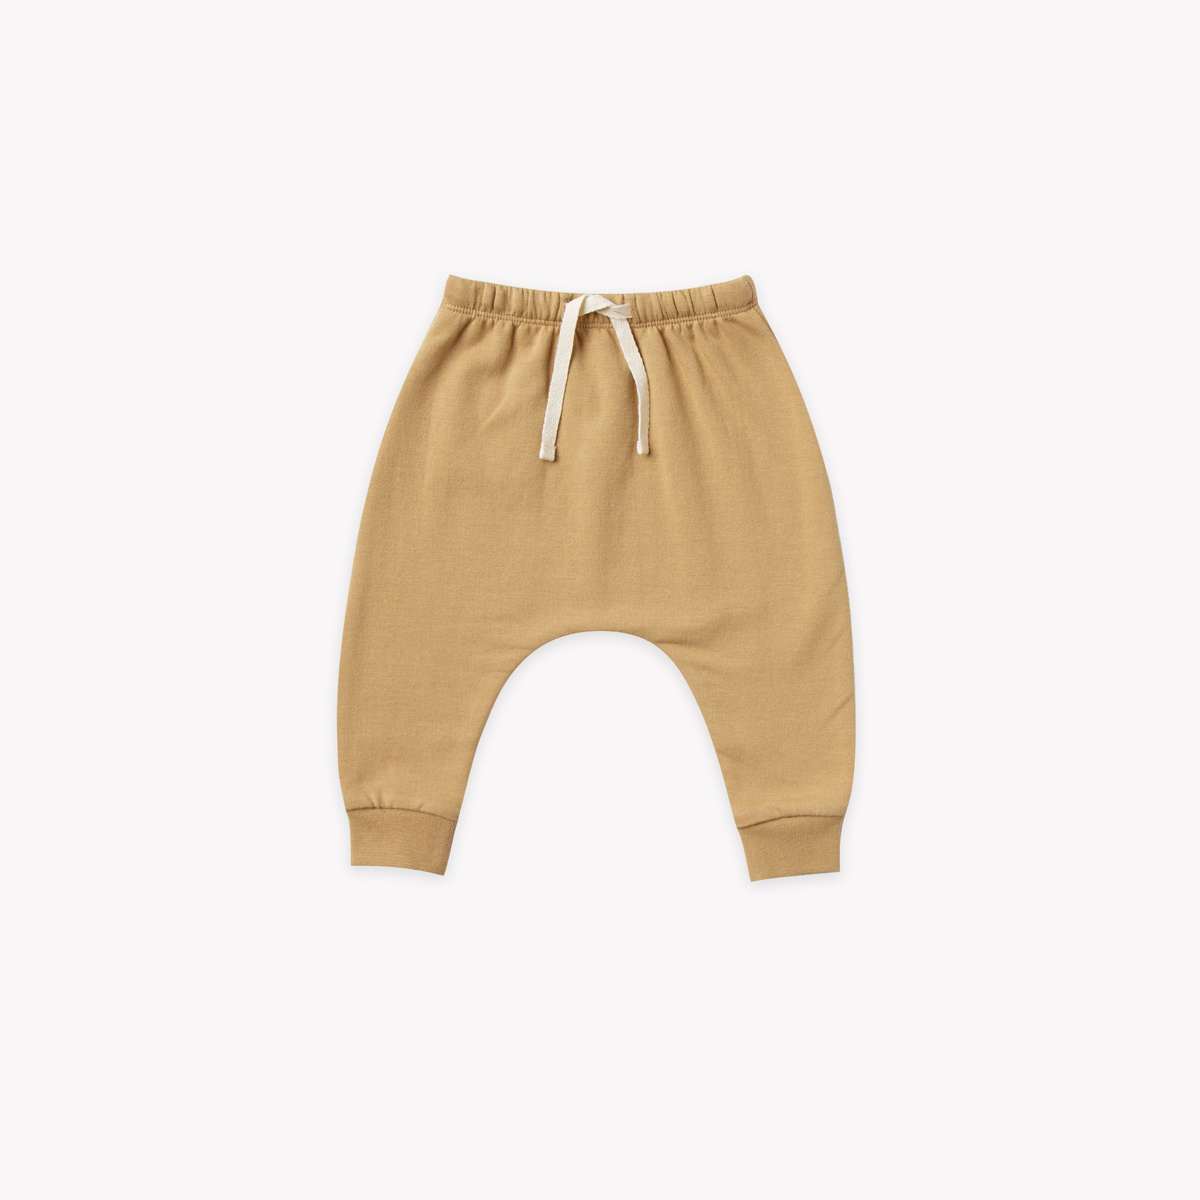 Quincy Mae - QM Quncy Mae - Fleece Sweatpant in Honey